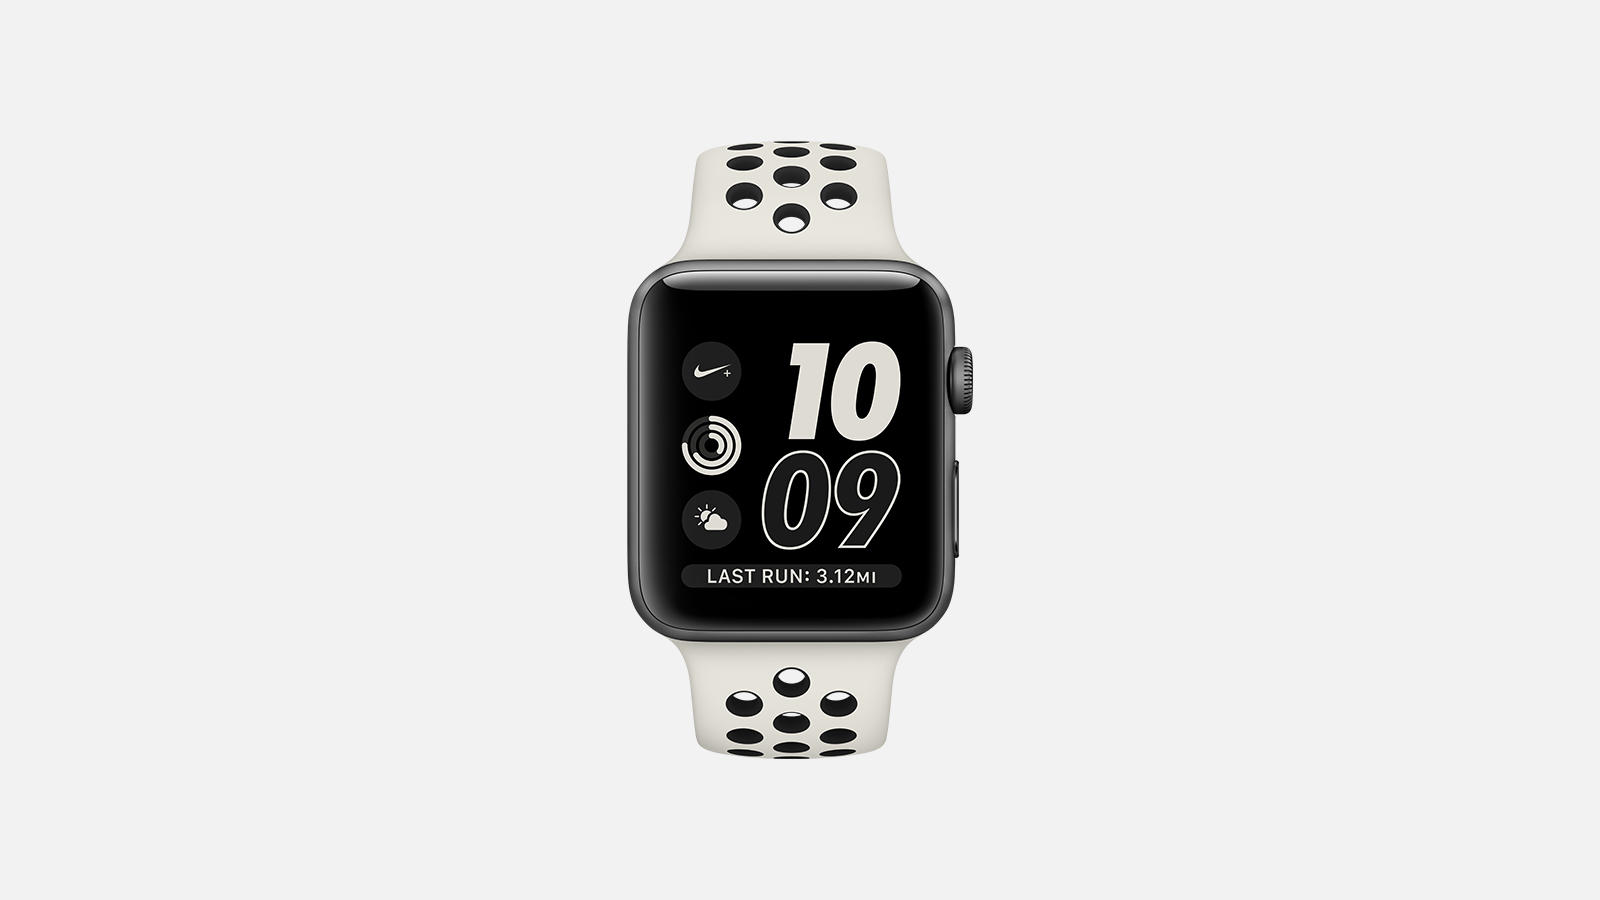 solo de repuesto fácilmente  New Apple Watch NikeLab Champions neutral-toned Style - Nike News